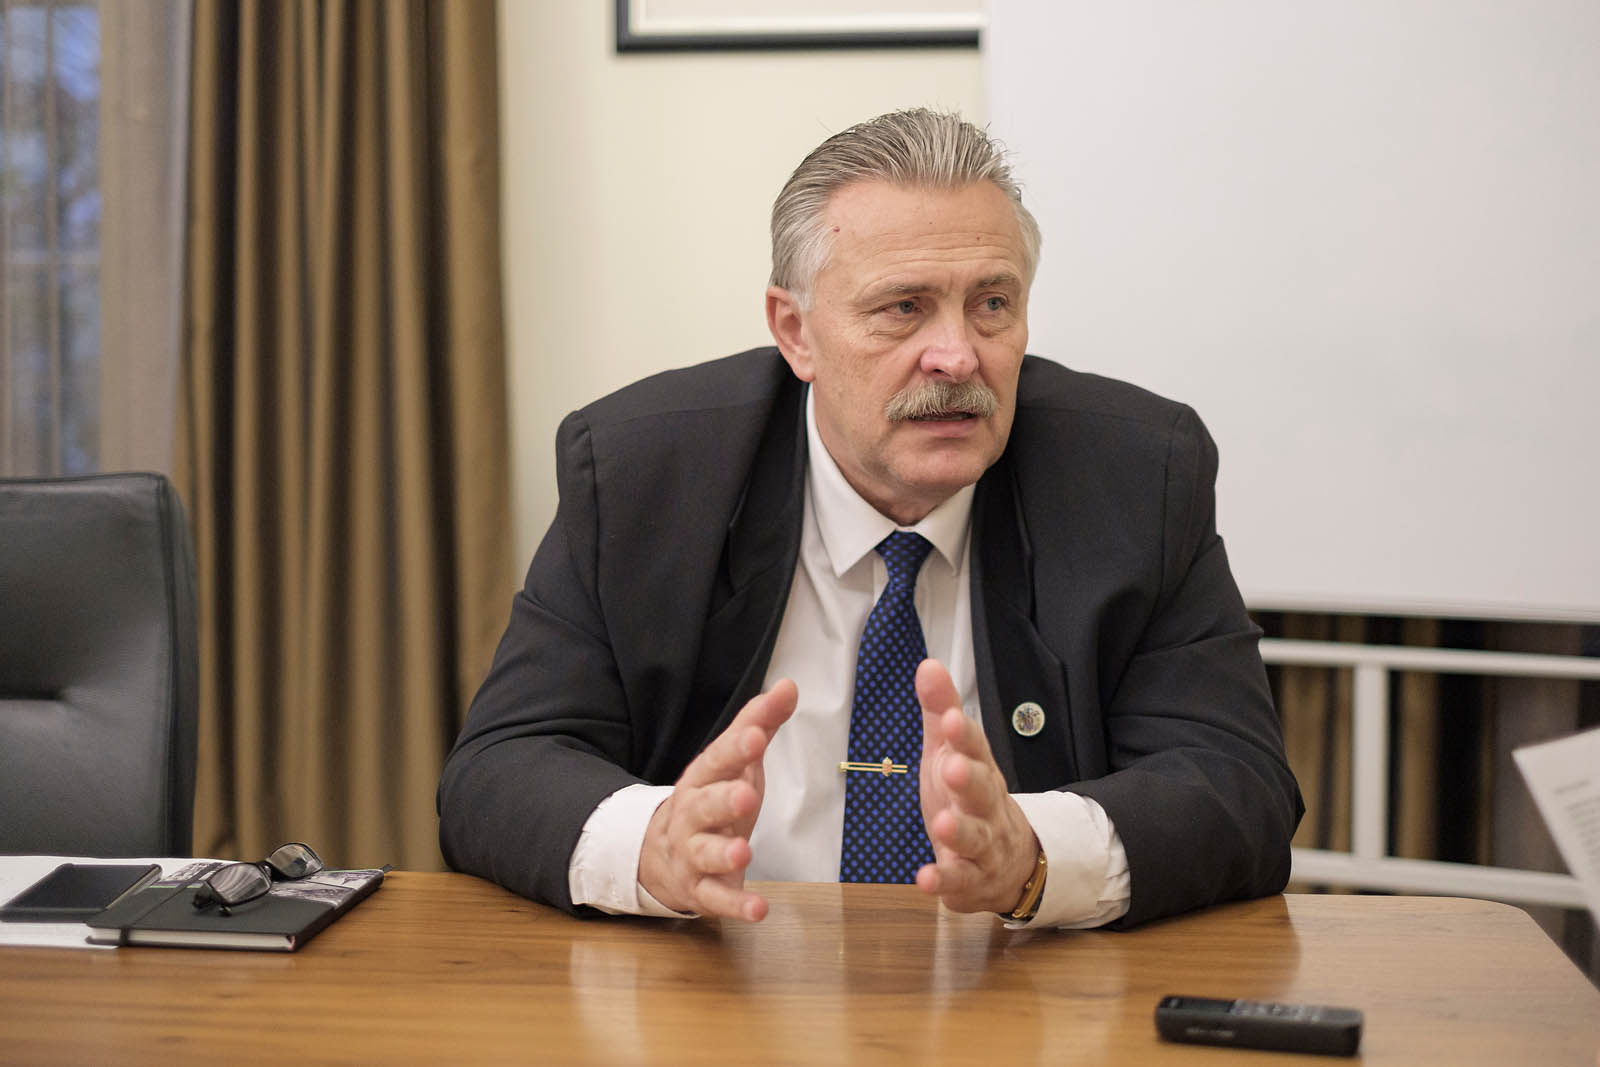 Interview with Miskolc Mayor Peter Veres